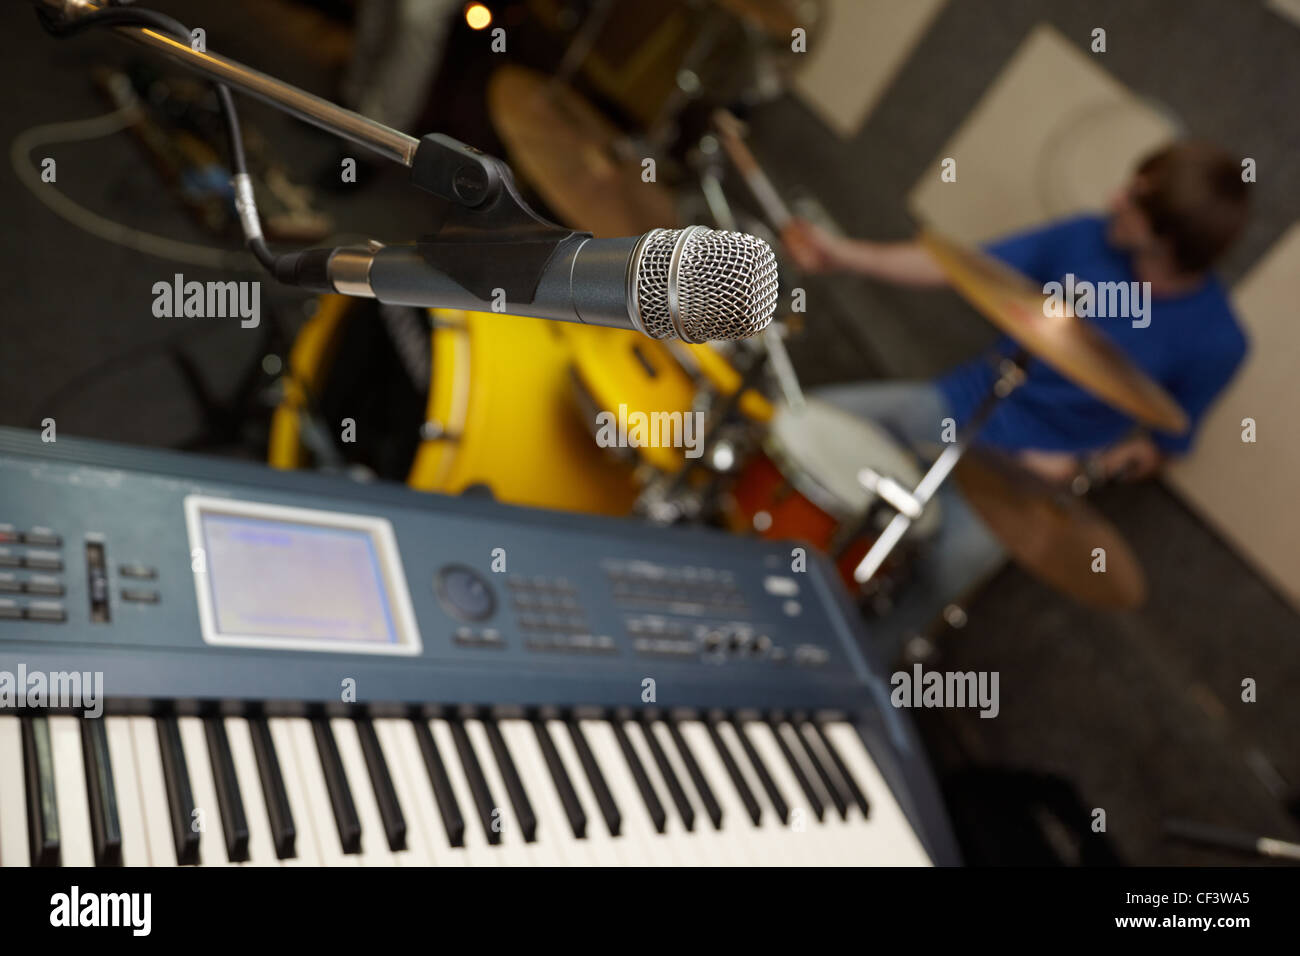 microphone near synthesizer. drummer in out of focus - Stock Image